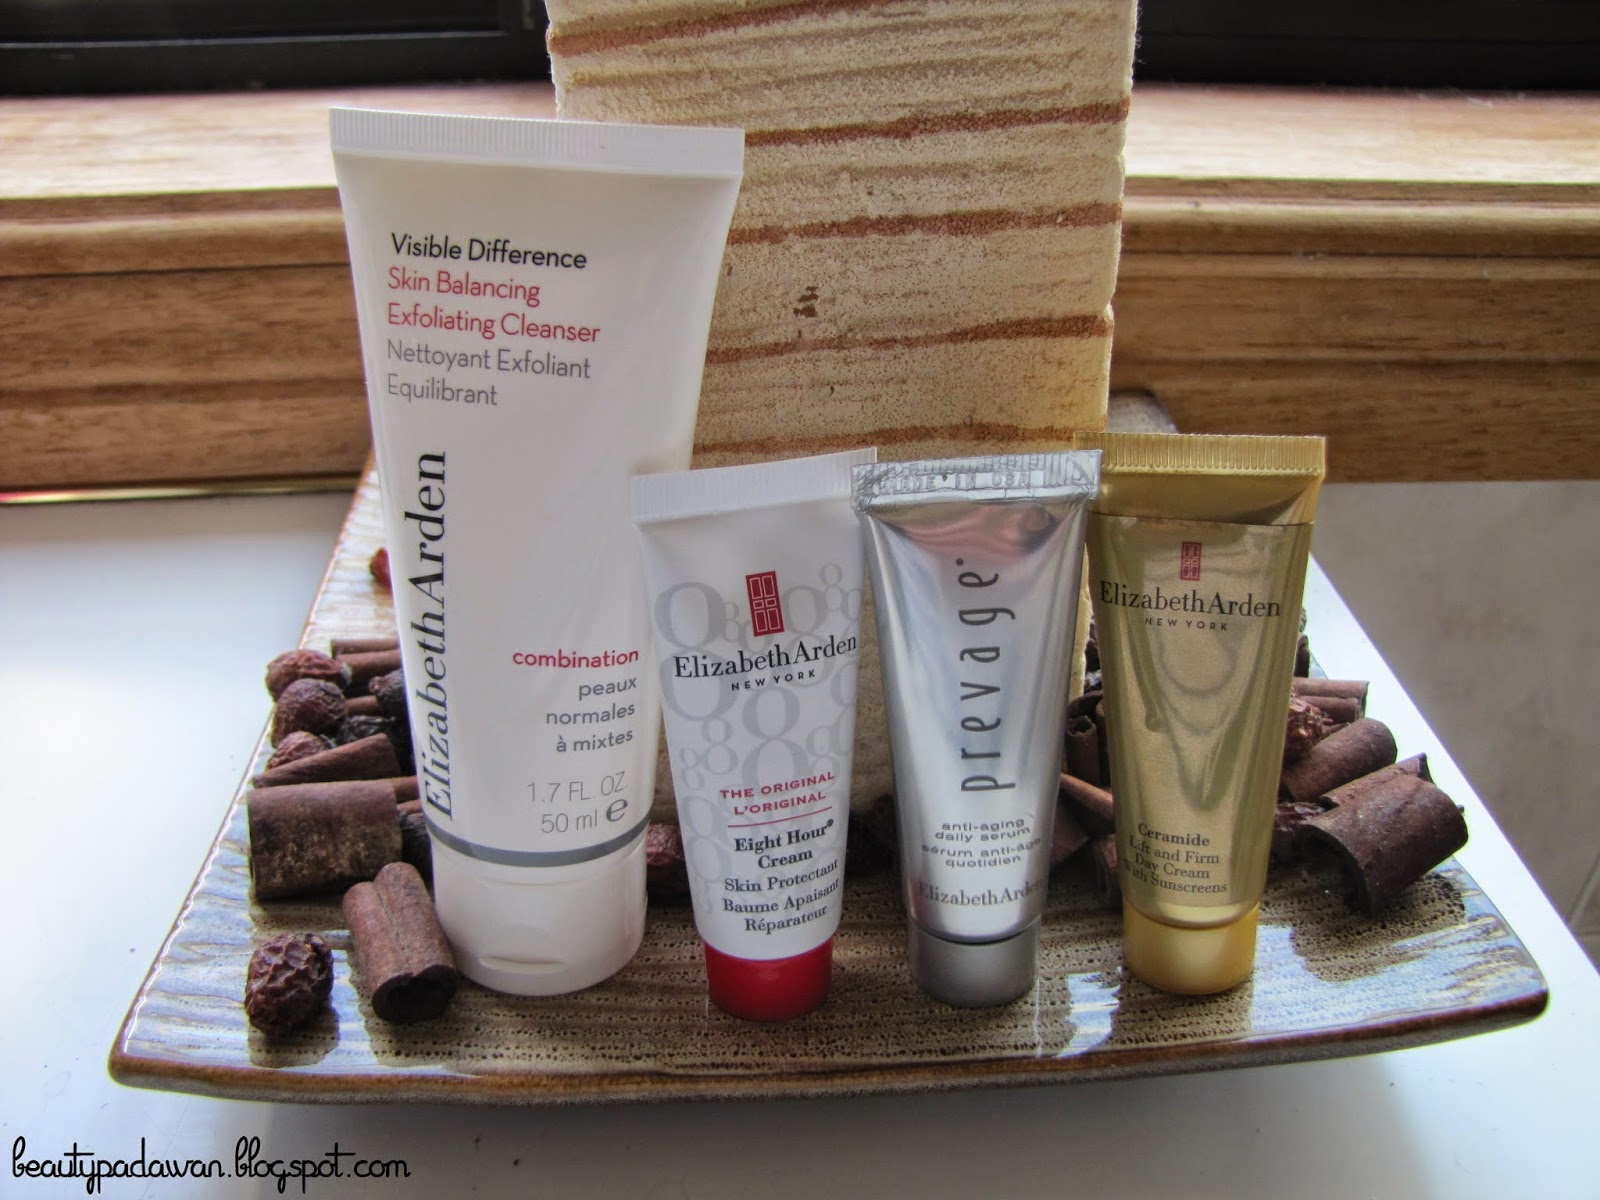 Elizabeth Arden Visible Difference Skin Balancing Exfoliating Cleanser; Elizabeth Arden The Original Eight Hour Cream Skin Protectant; Elizabeth Arden Prevage Anti-Aging Daily Serum; Elizabeth Arden Ceramide Lift and Firm Day Cream with Sunscreen